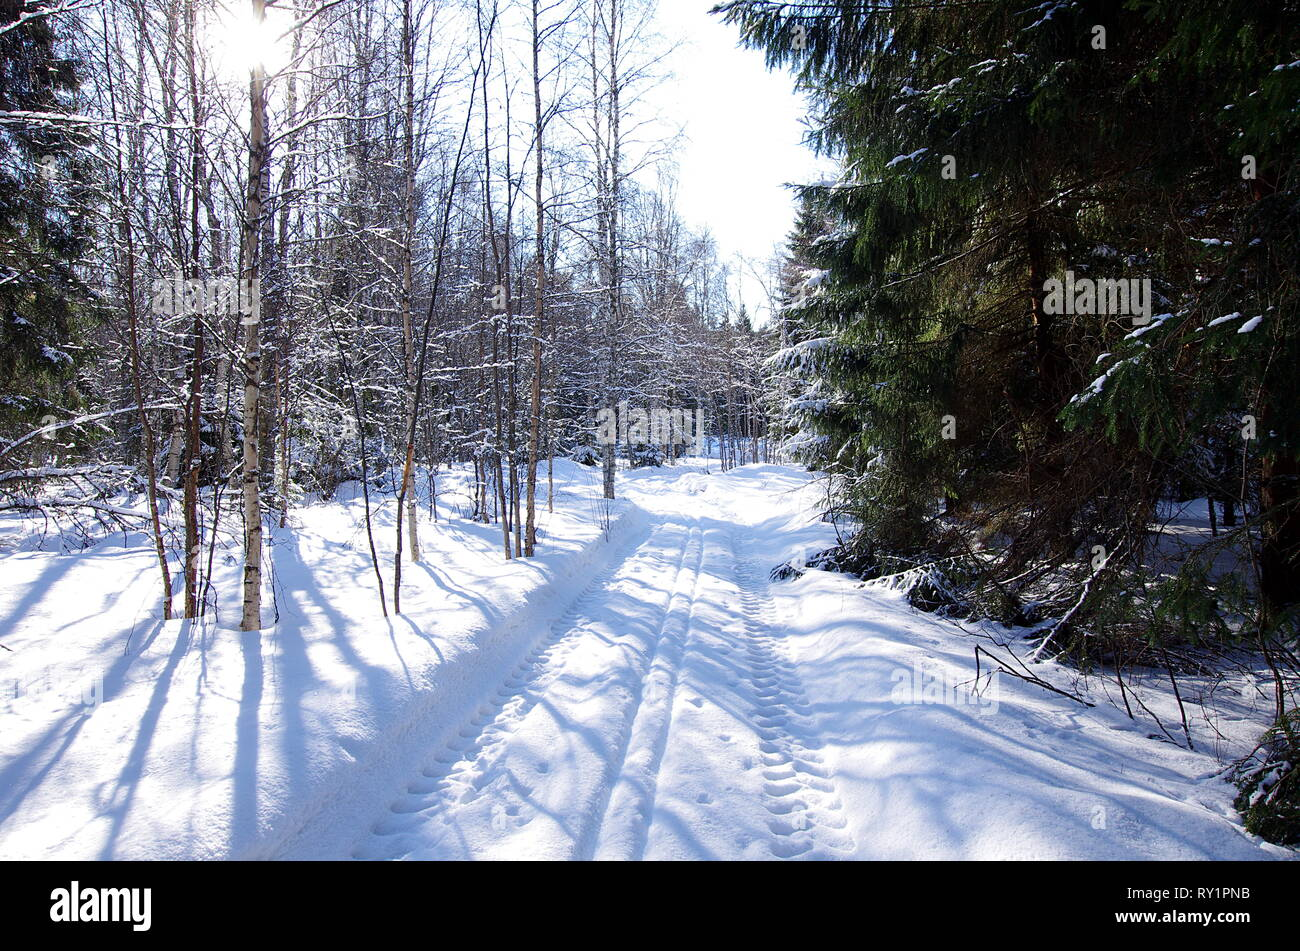 Beautiful winter landscapes in the forest on a cold and sunny day in Sweden. - Stock Image